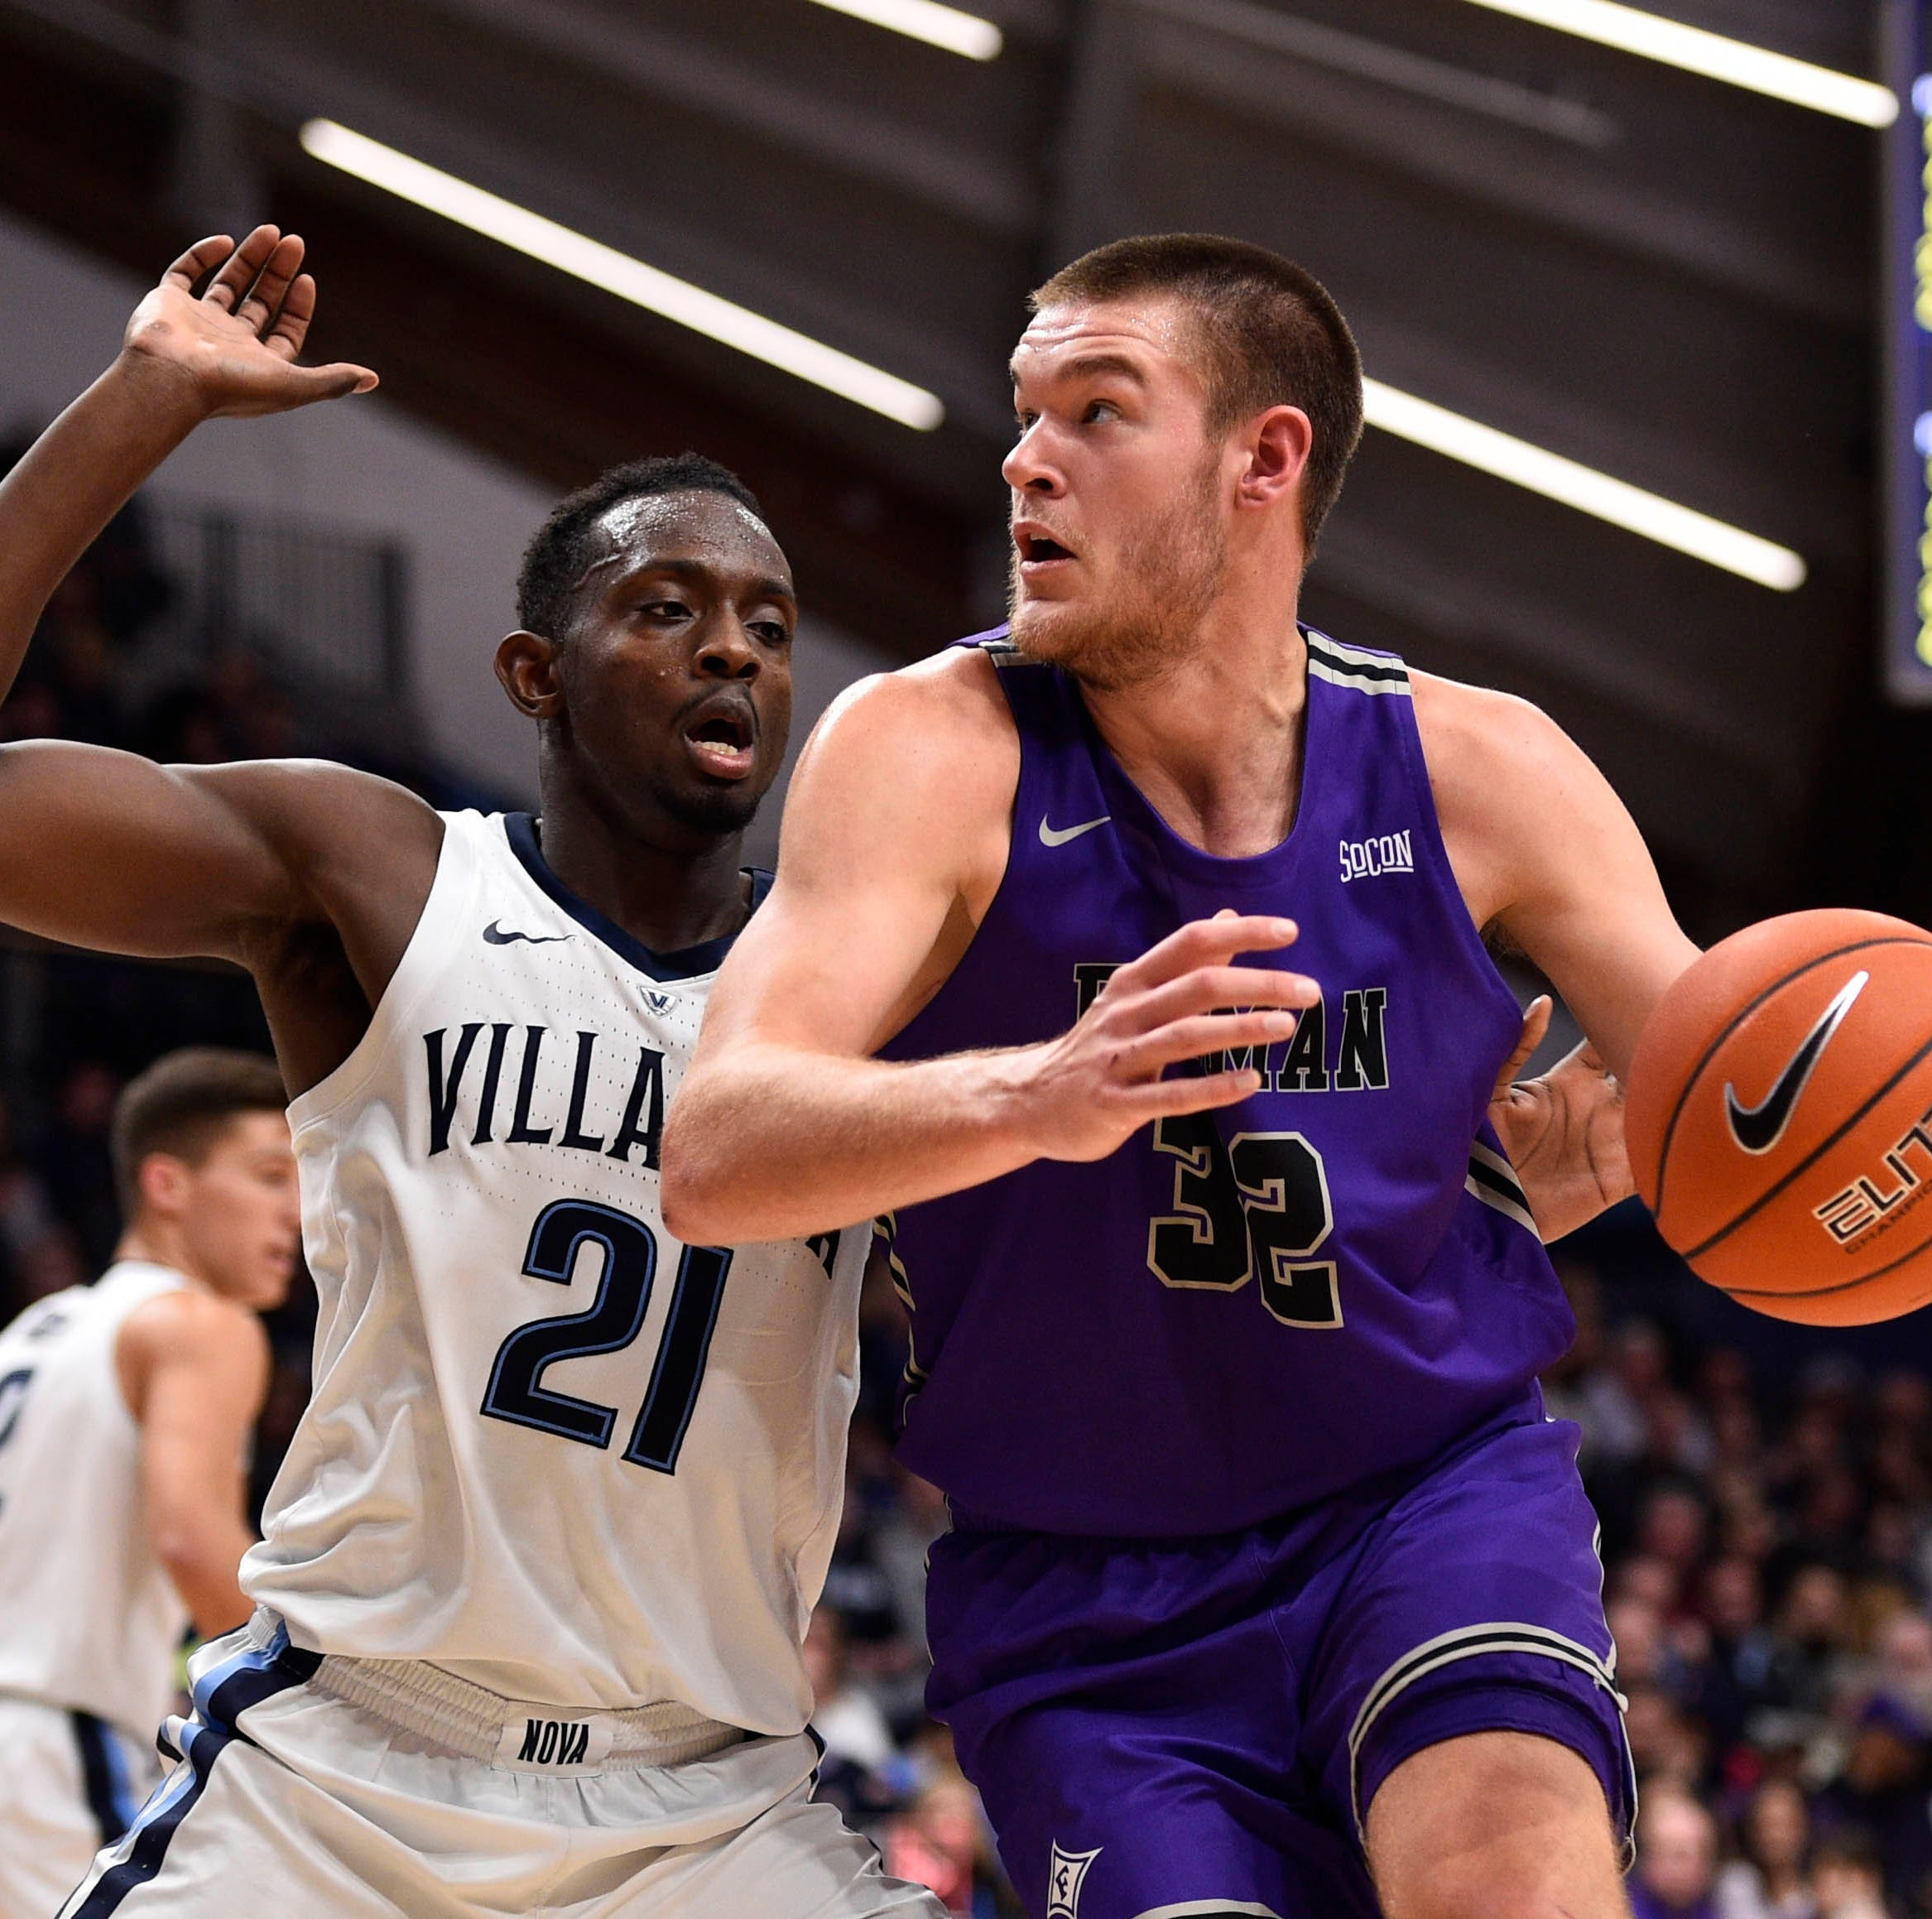 Furman basketball shocks defending national champion Villanova